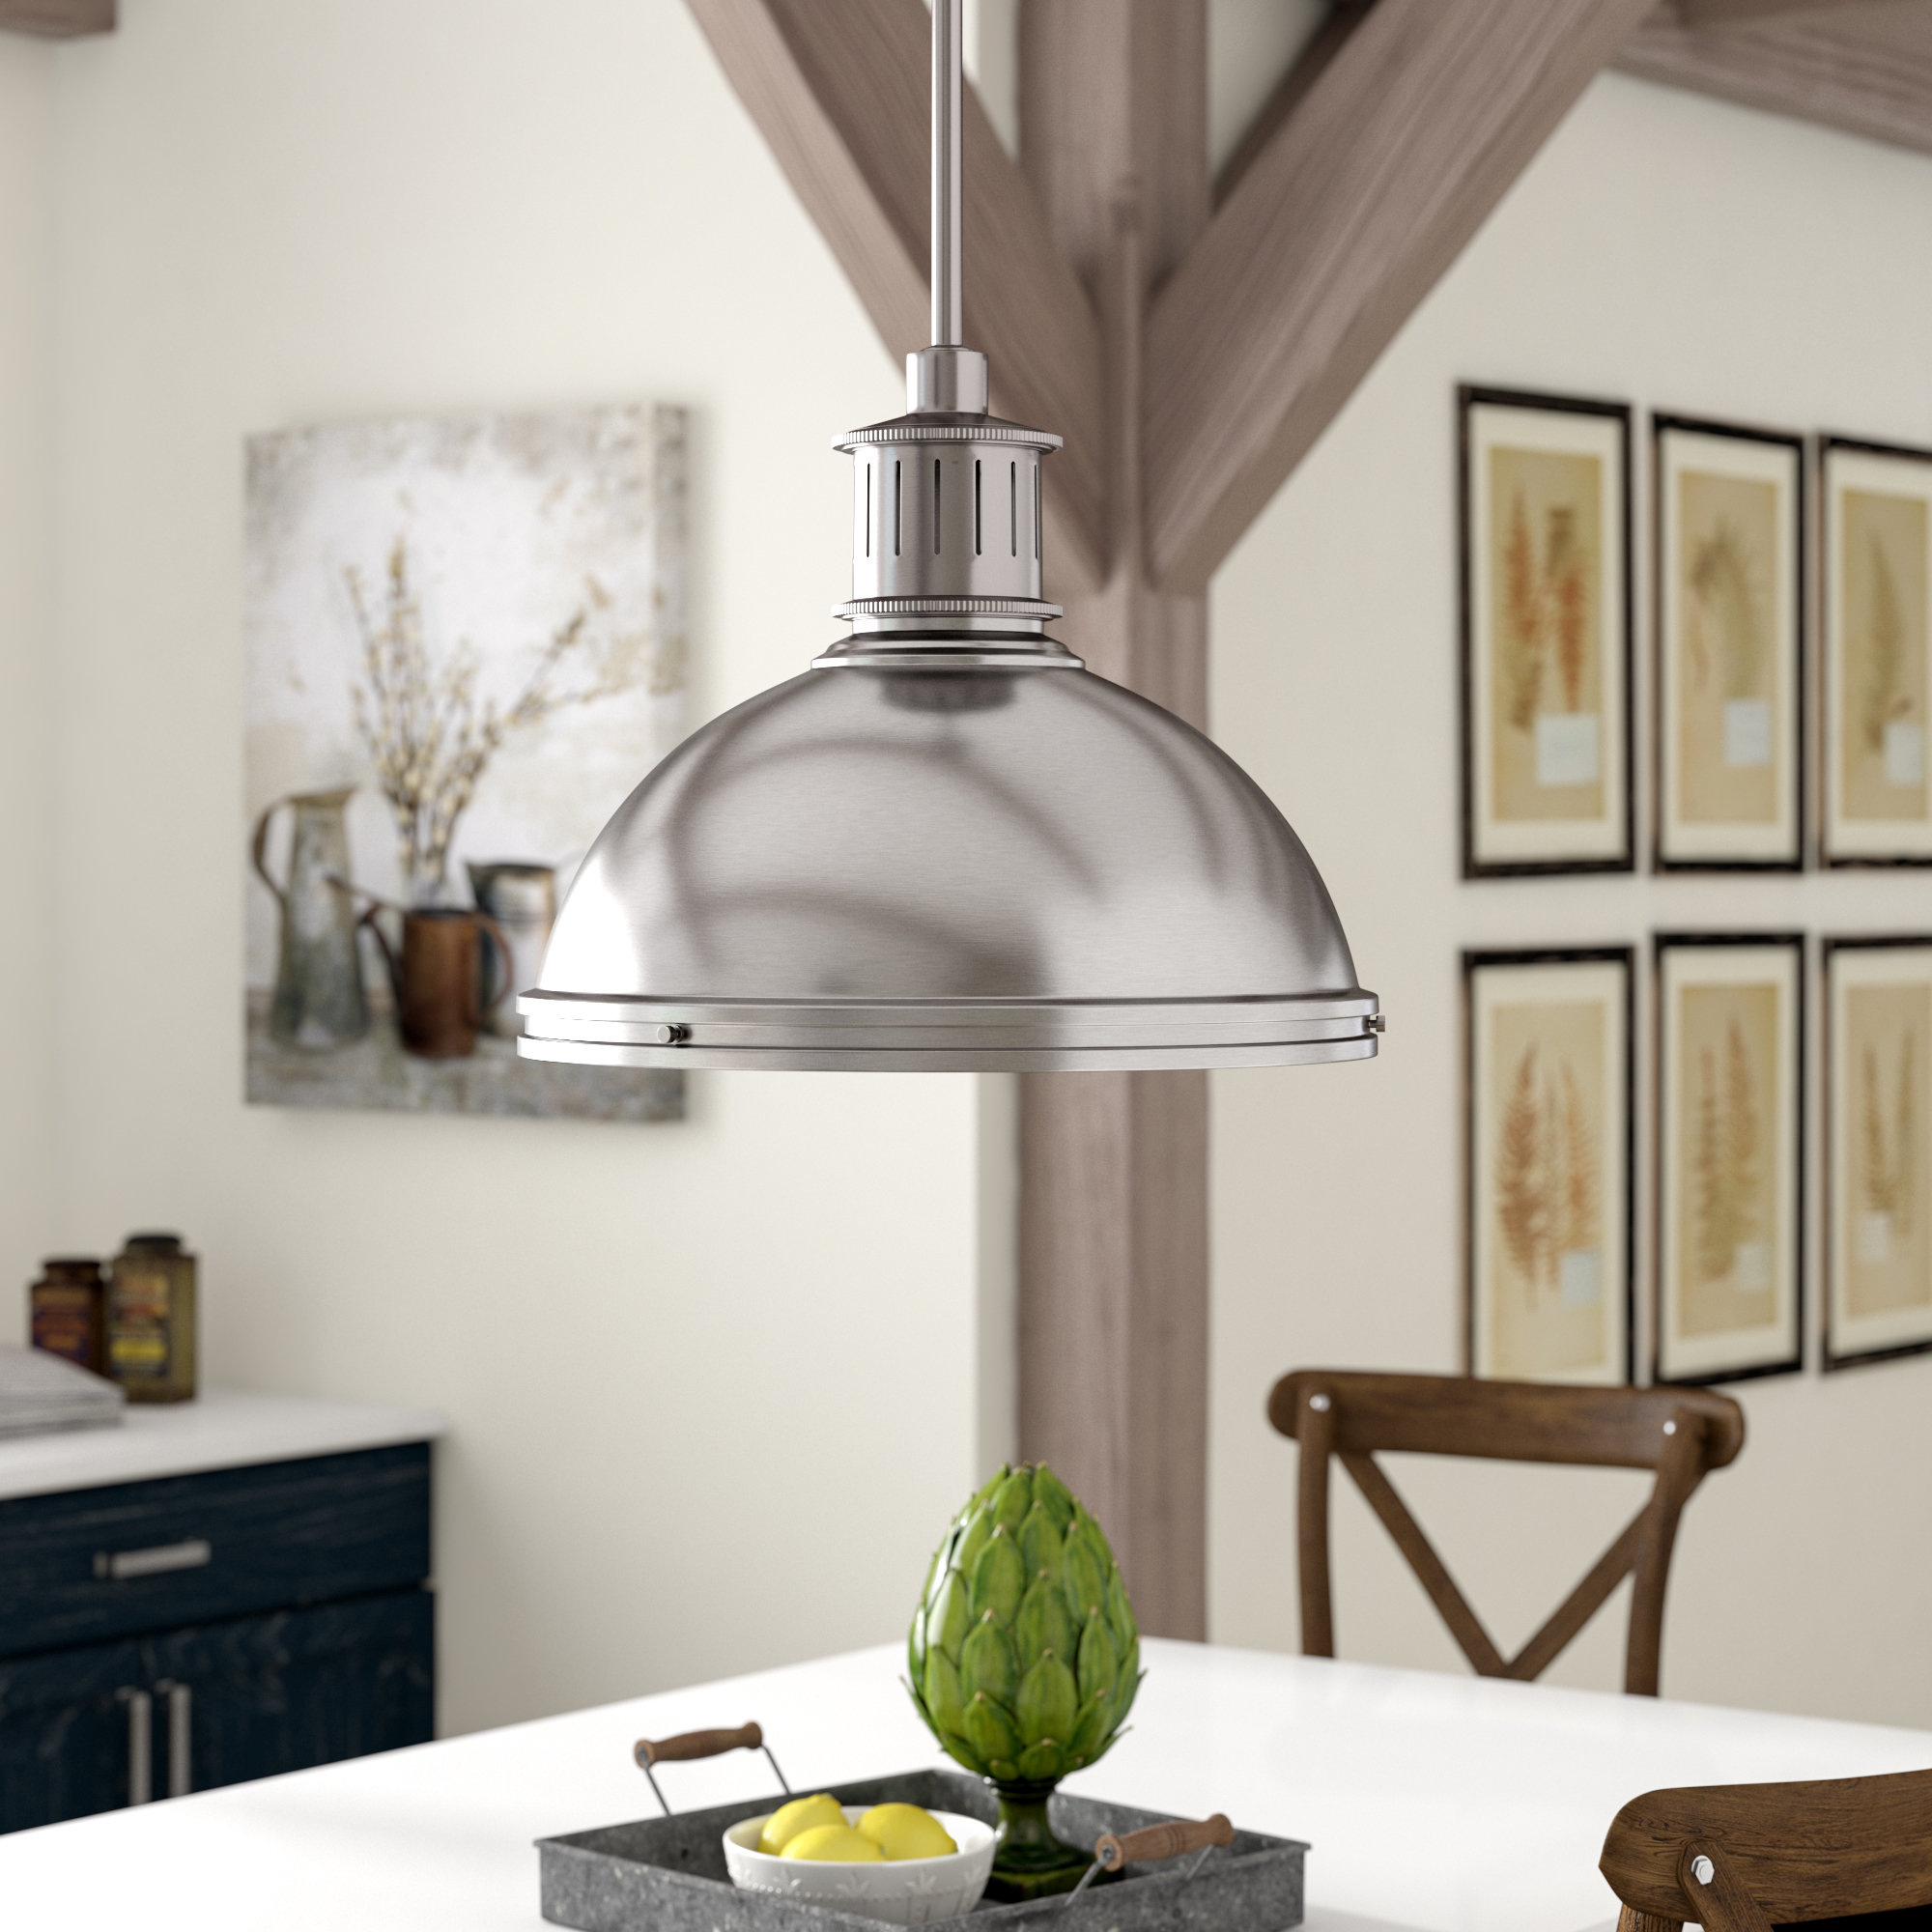 Orchard Hill 1 Light Led Single Dome Pendant Regarding Latest Macon 1 Light Single Dome Pendants (Gallery 20 of 20)